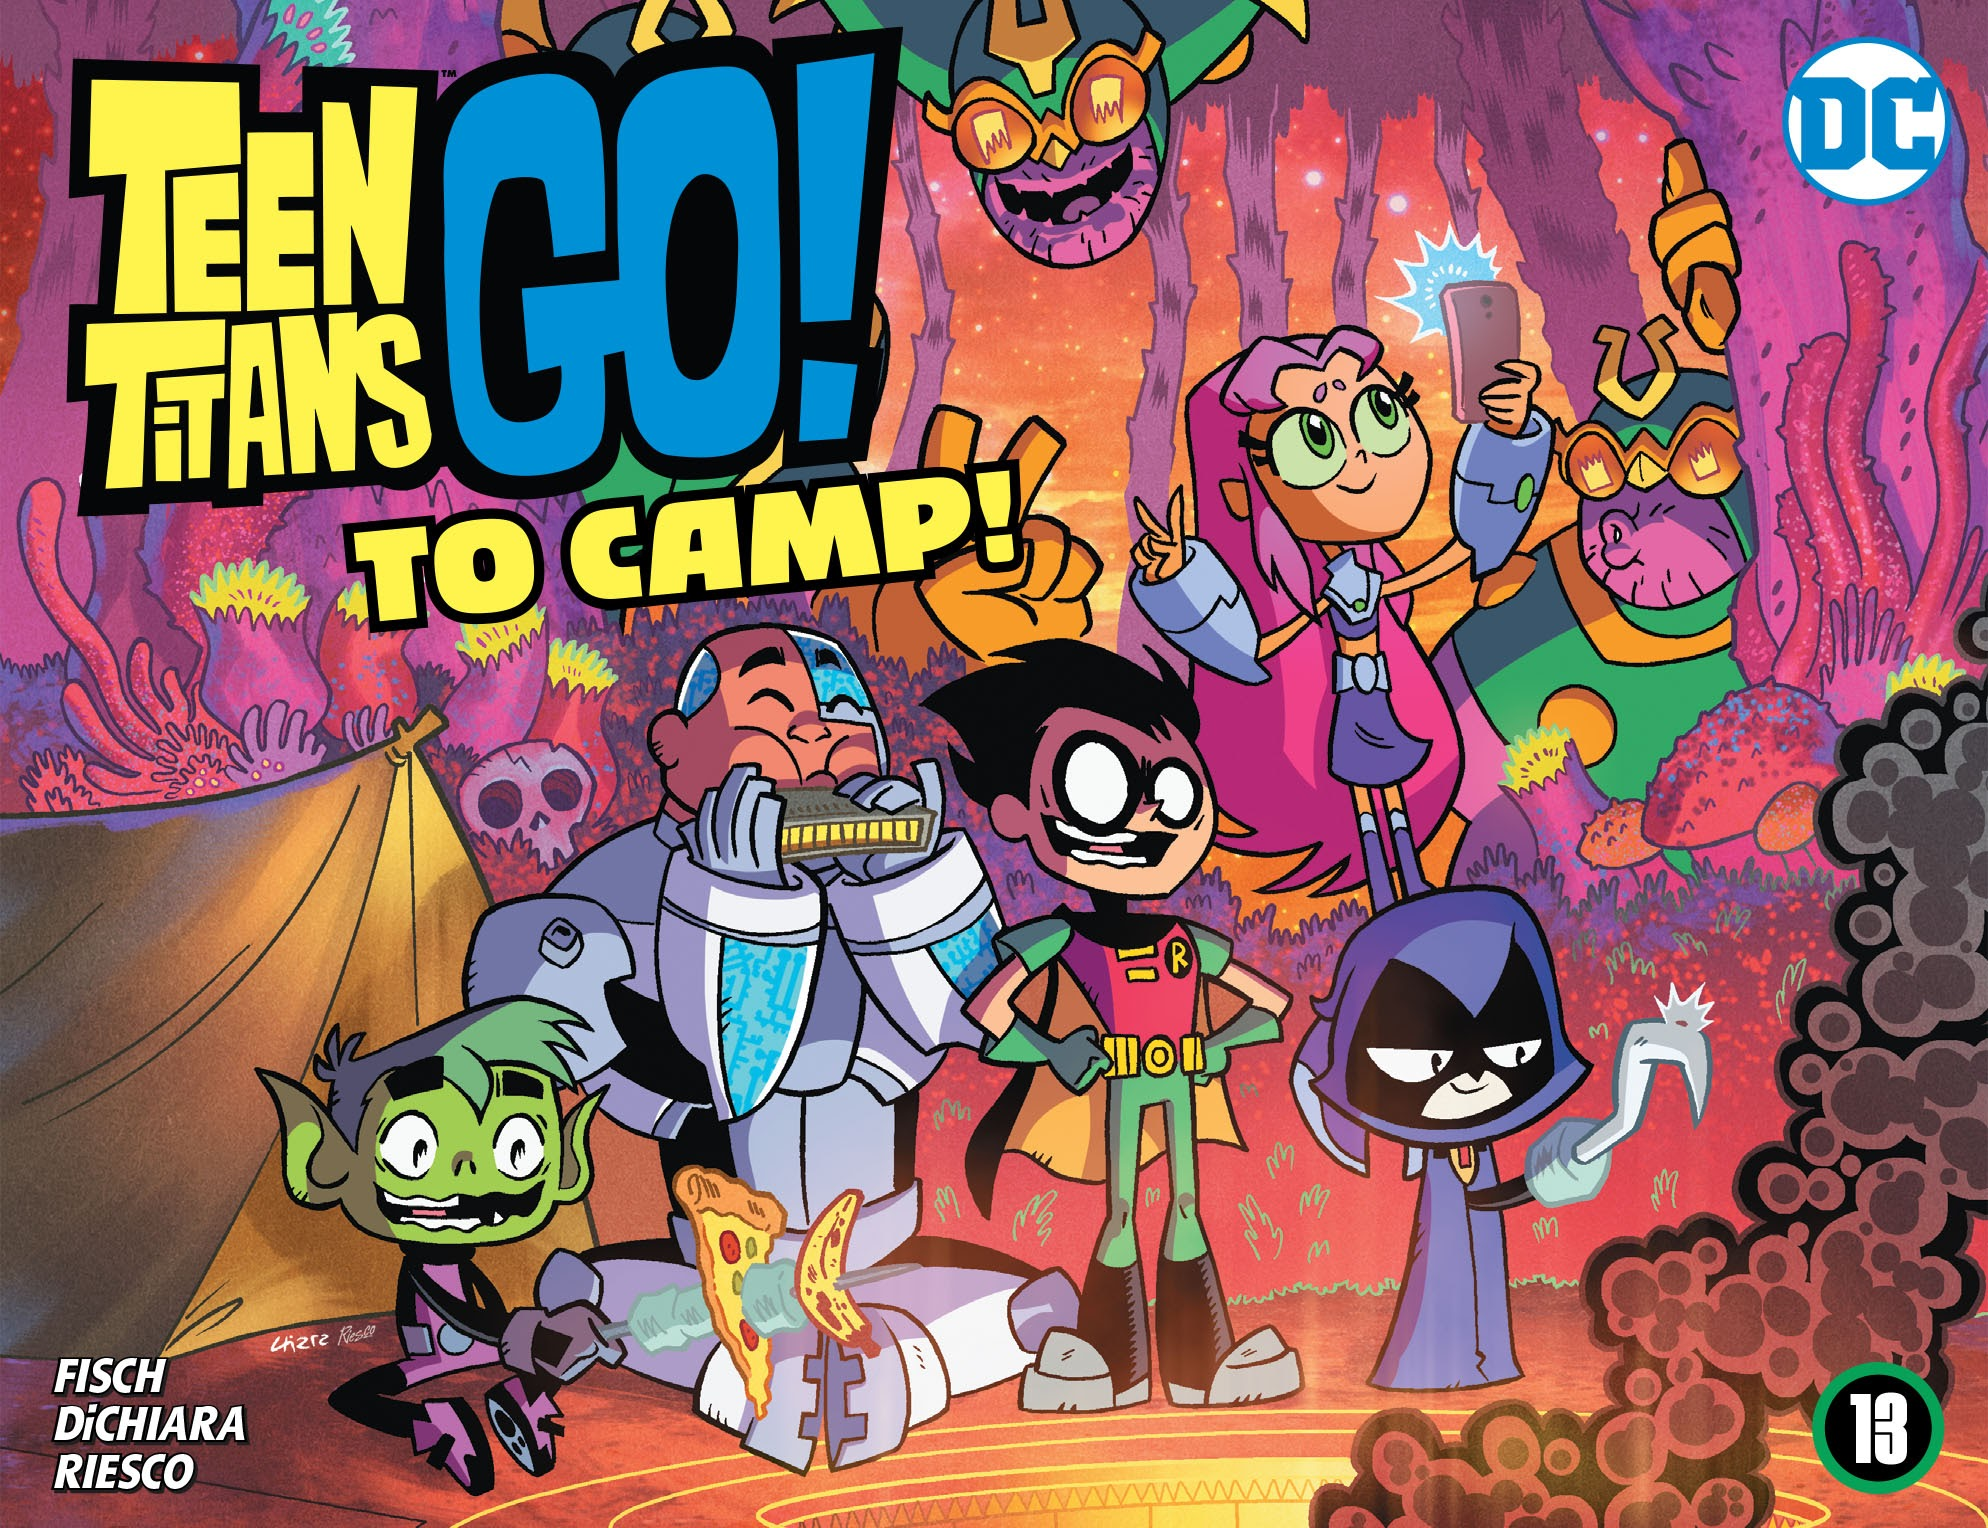 Teen Titans Go! To Camp 13 Page 1